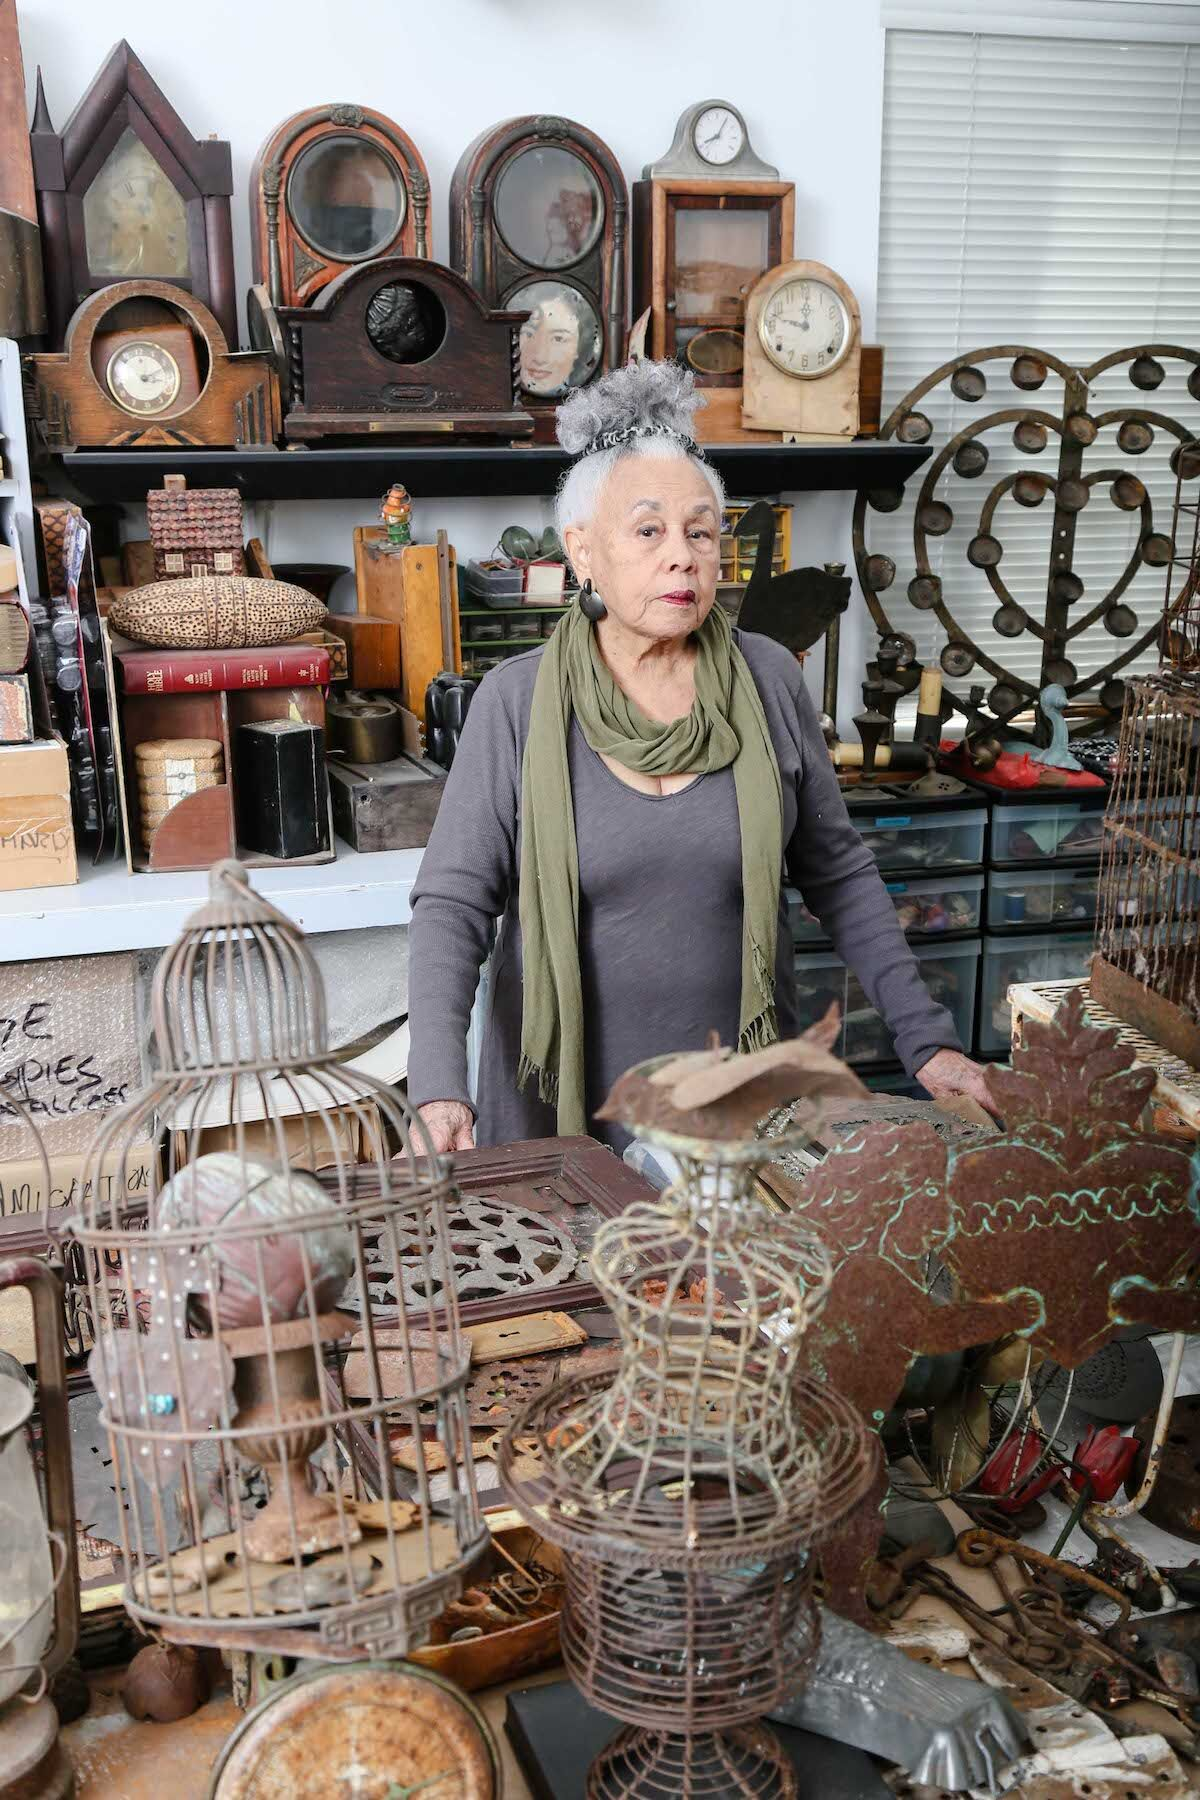 Betye Saar in her Los Angeles studio, 2015. Photo by Ashley Walker, courtesy of the artist and Roberts Projects, Los Angeles.